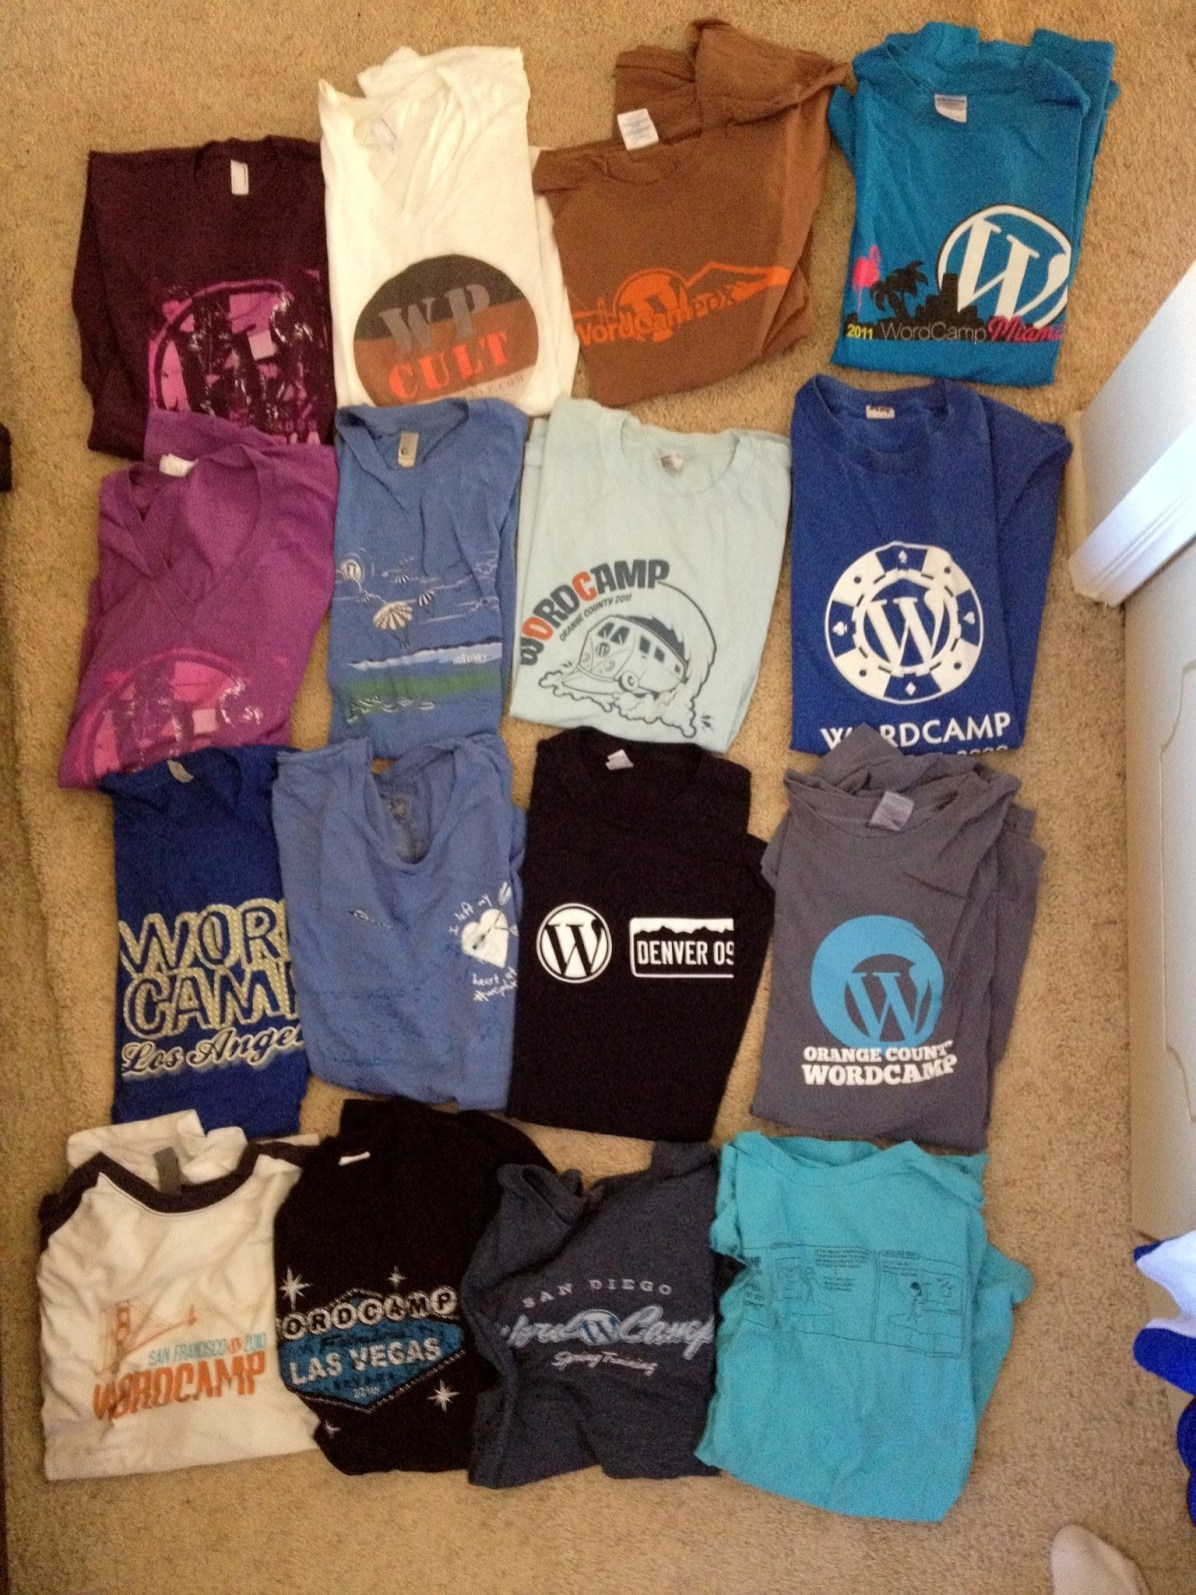 WordCamp shirts